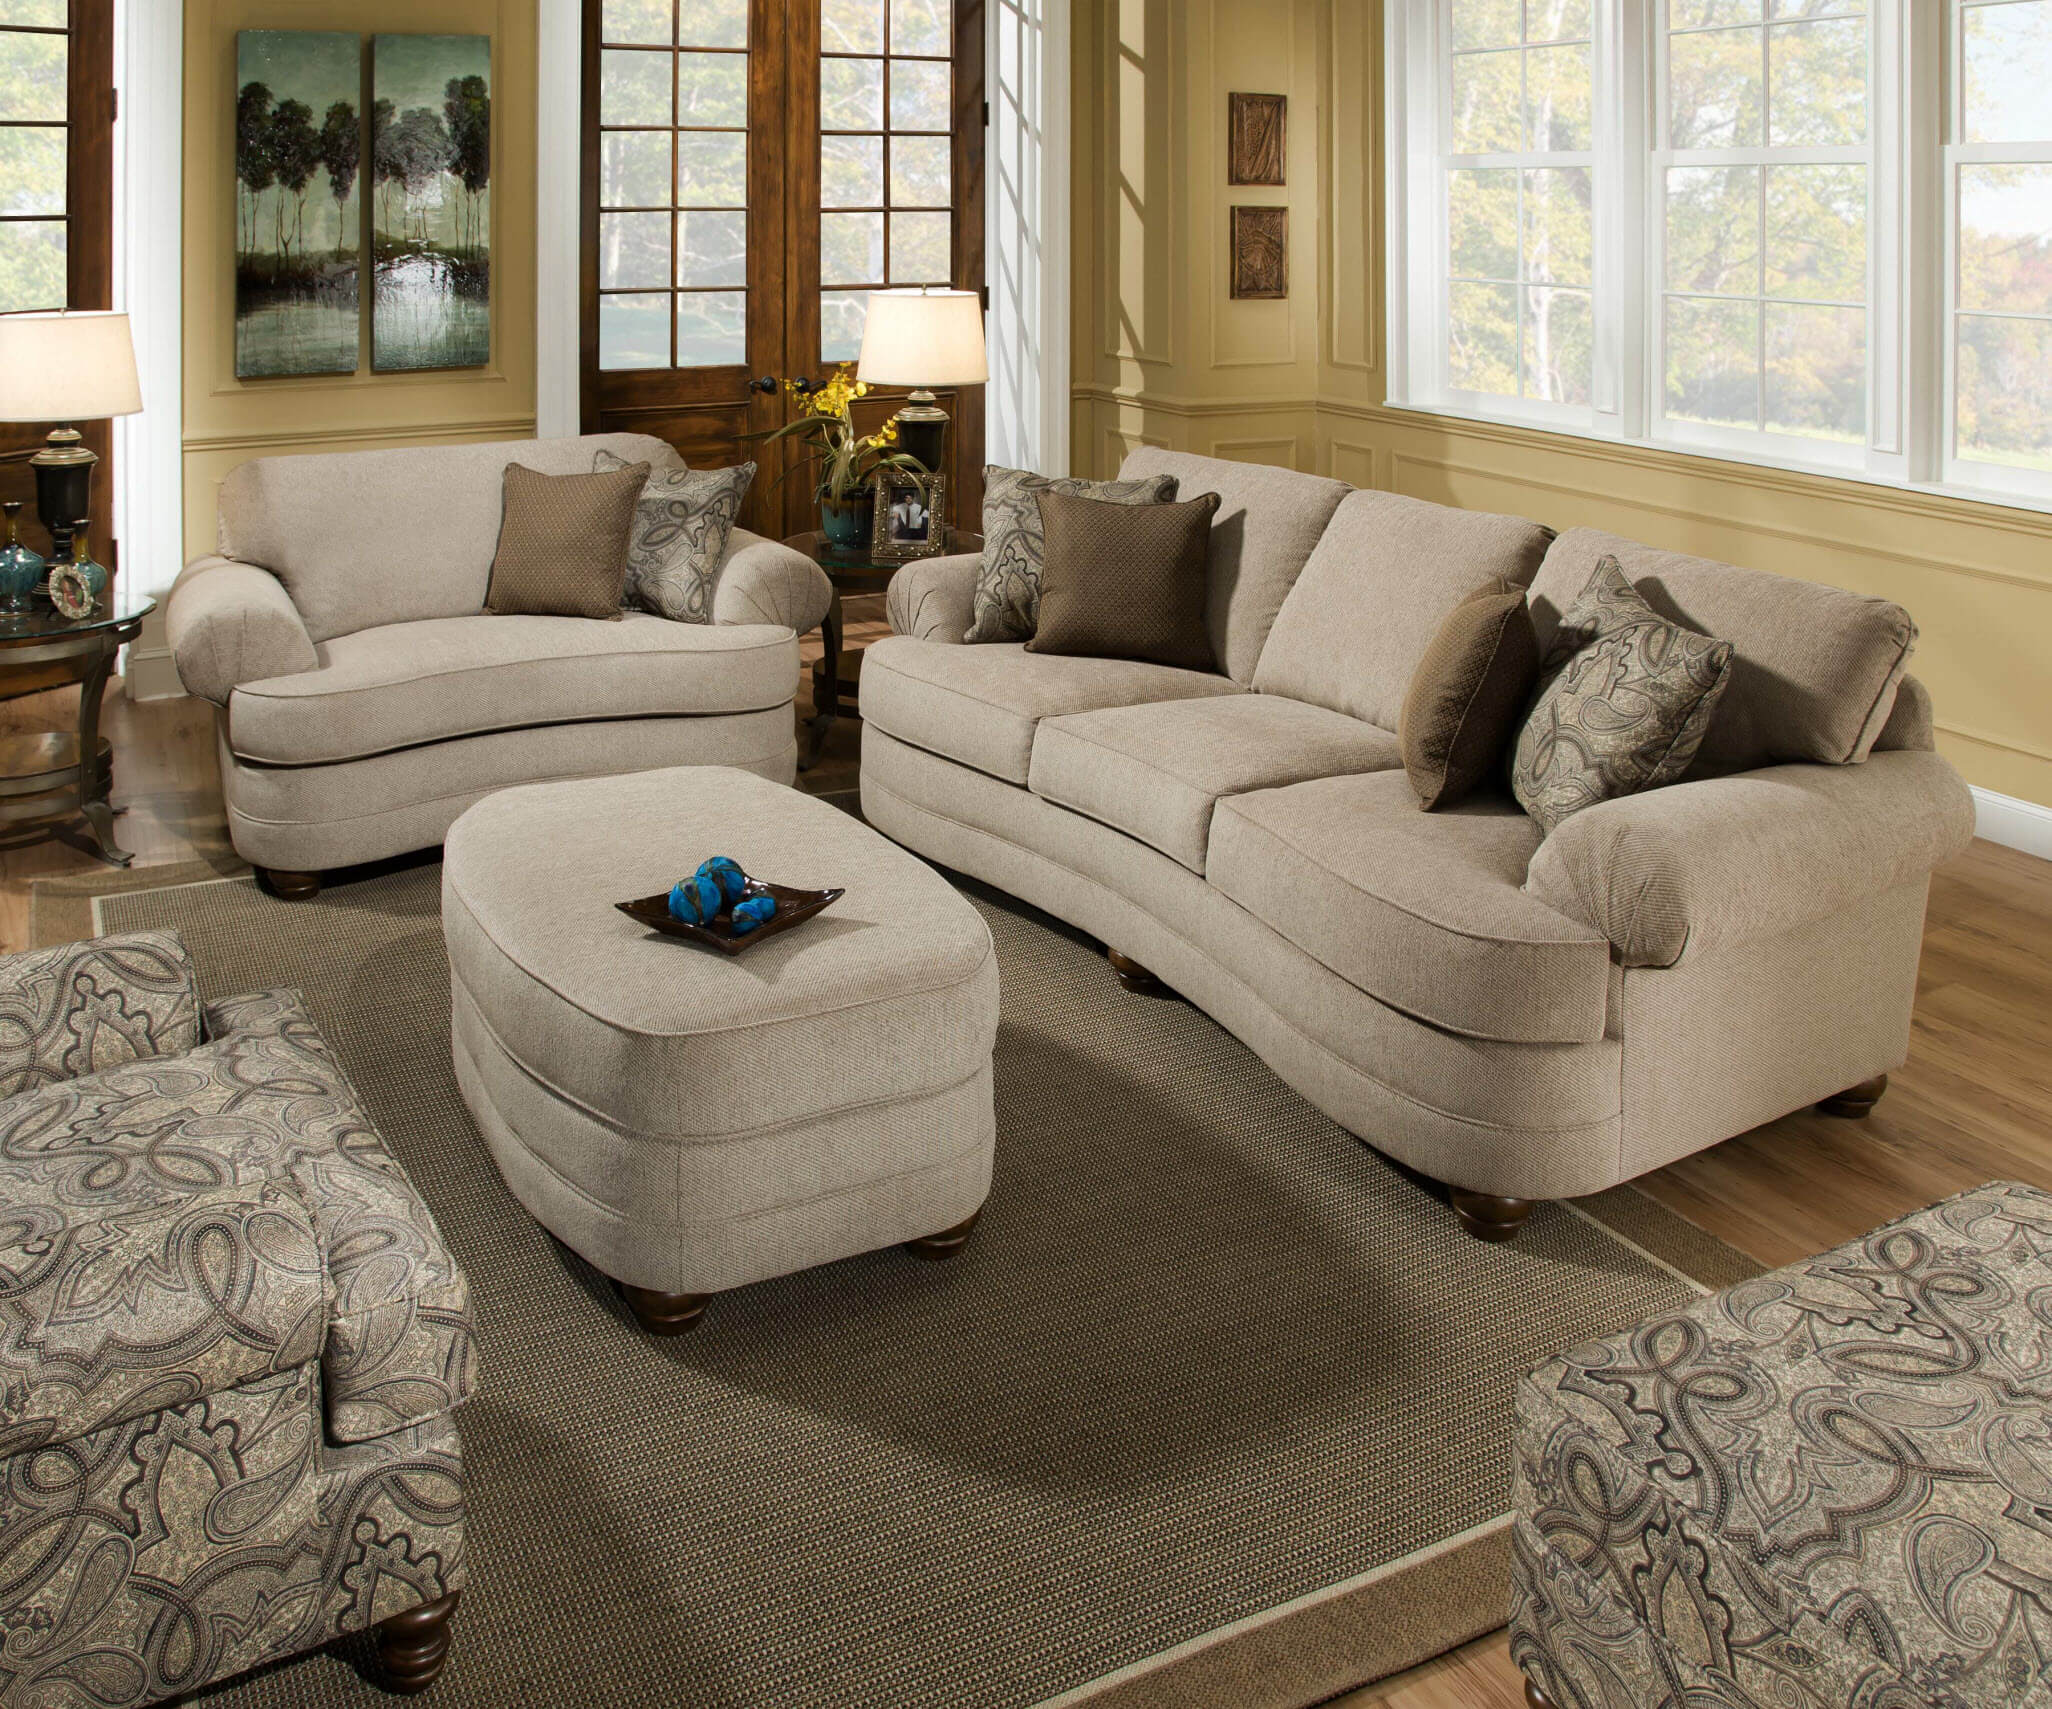 Simmons Living Room Set. Fabric Living Room Sets Nasharia Barley Sofa and Chair